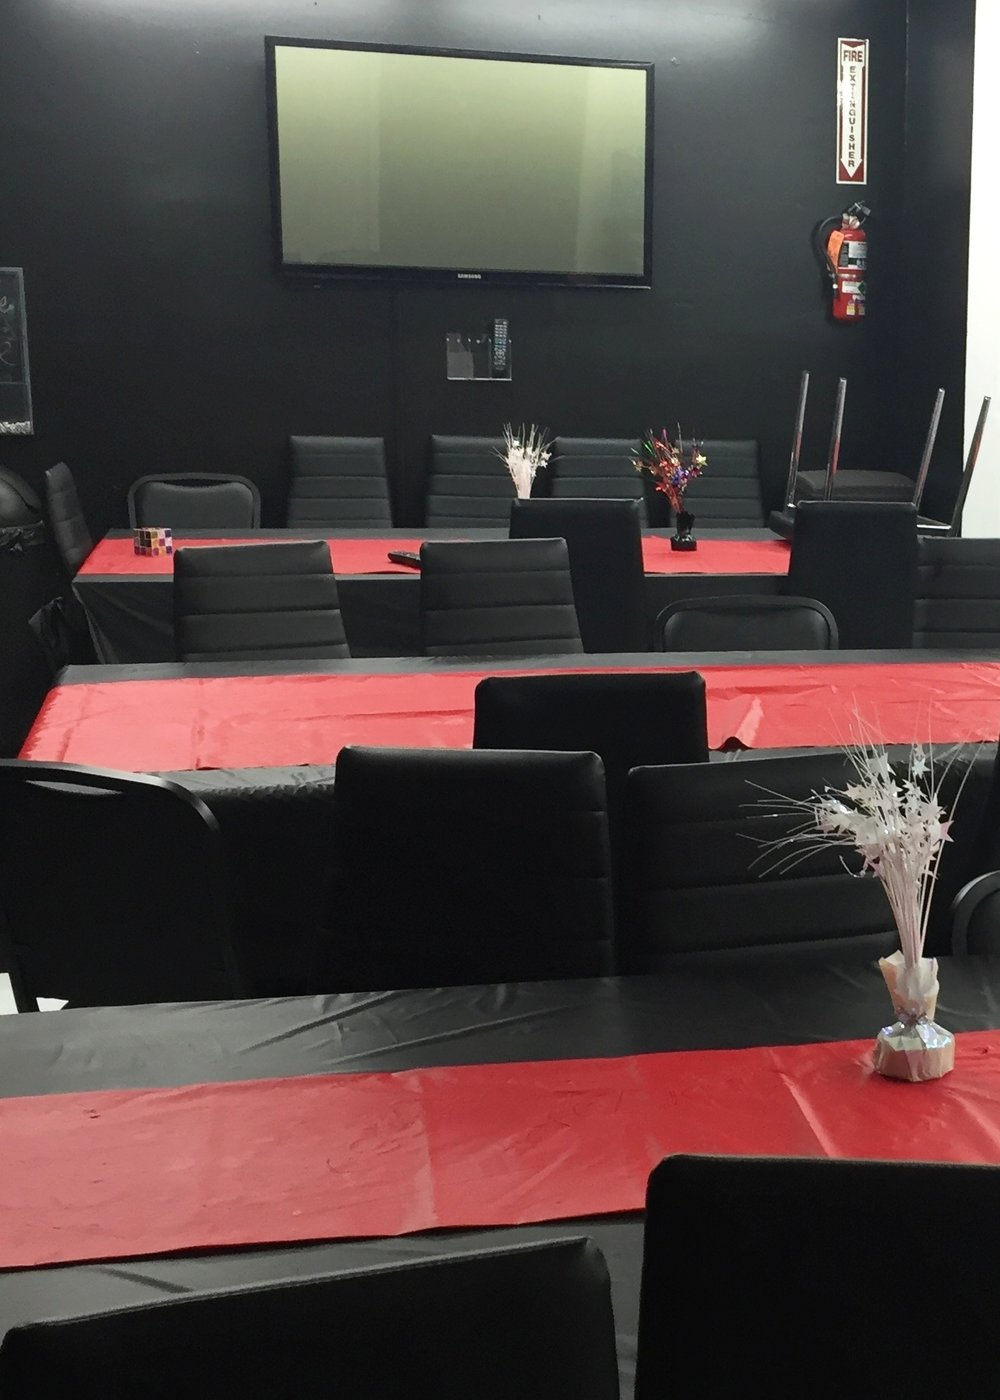 Party Room Rental - The Rockville Escape Room offers a multi-functional party room, with seating for 40. The cost for the room is $75* an hour and it includes tableware and cleaning.Ask about group discounts for large events!*Full deposit required to make reservation.